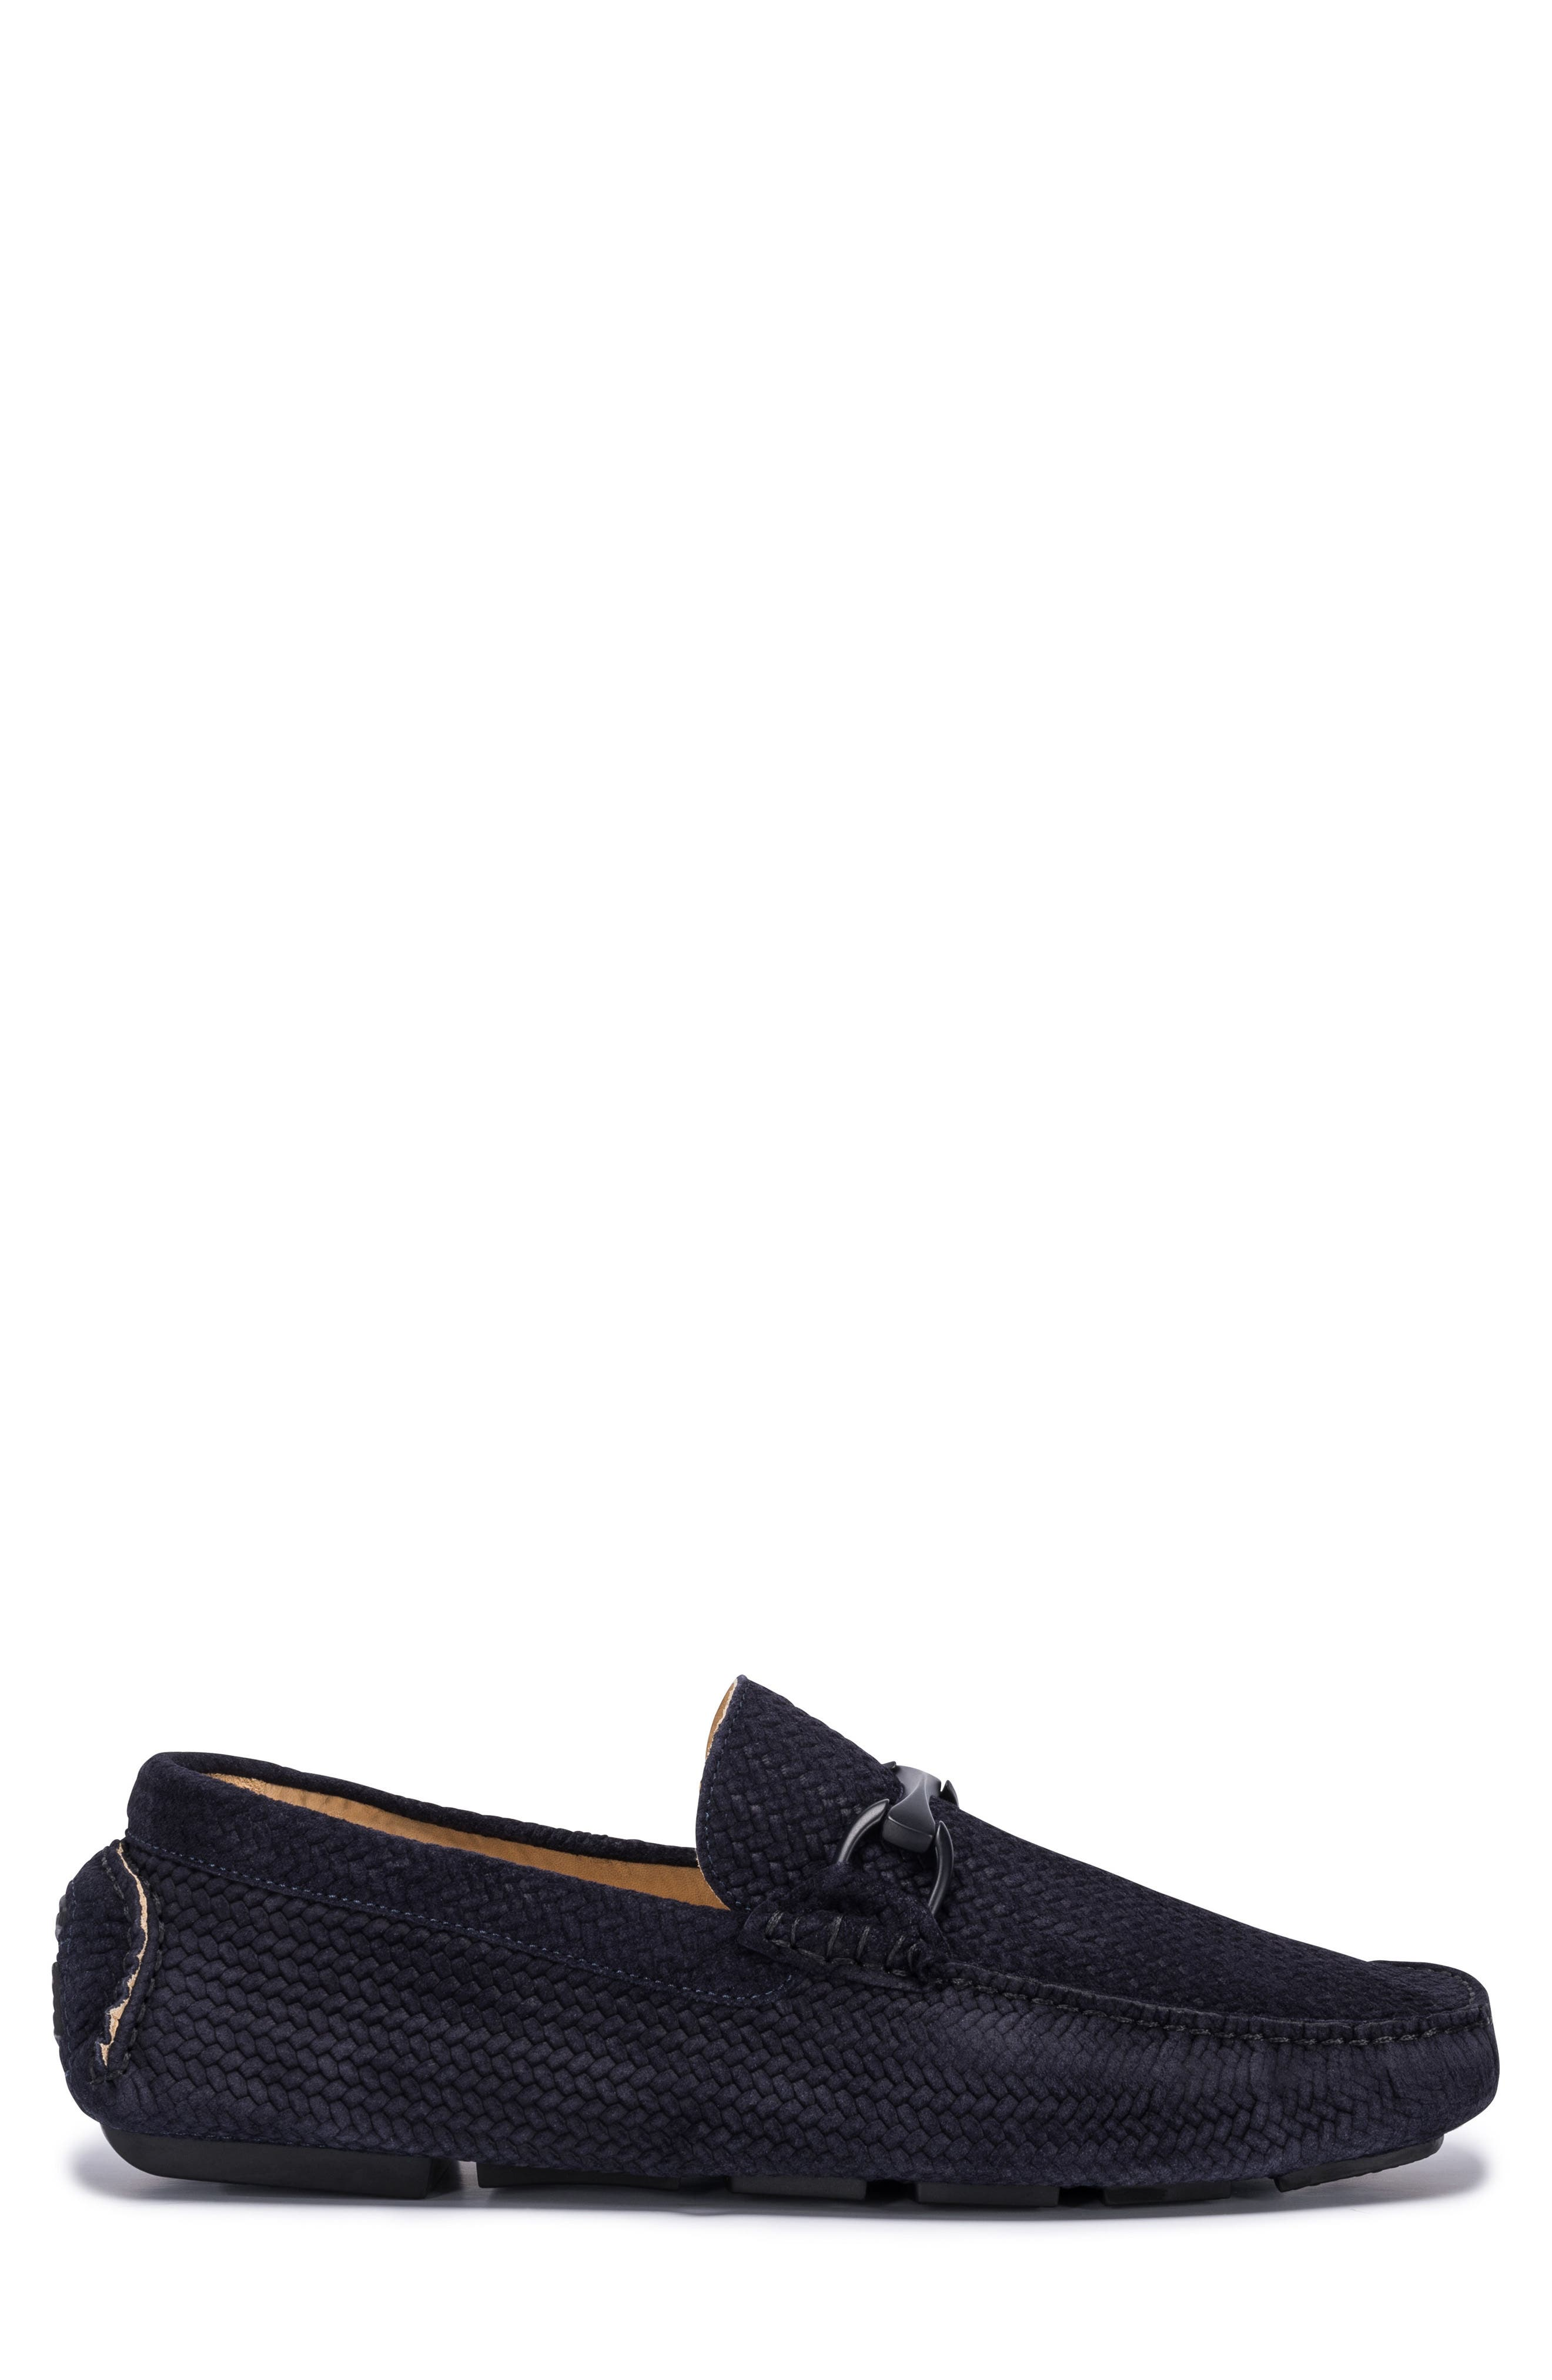 Amalfi Woven Bit Driving Loafer,                             Alternate thumbnail 3, color,                             429